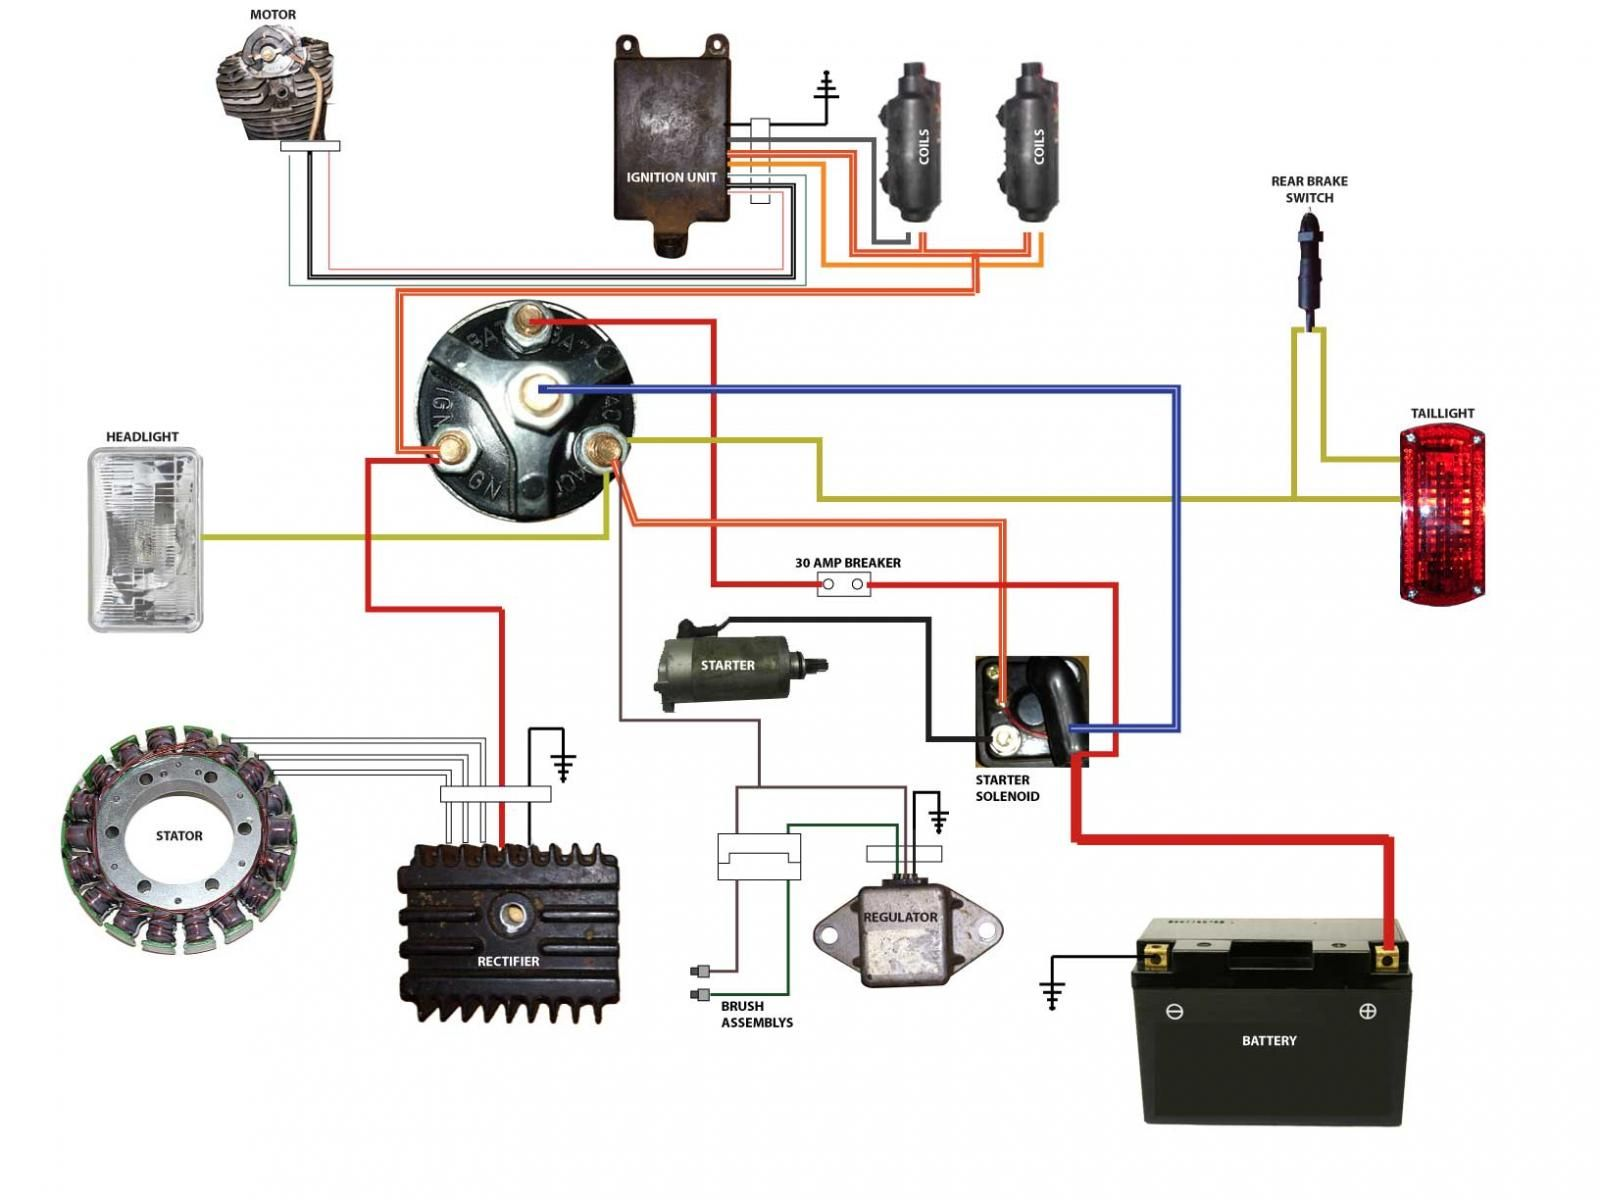 d72b6b9978ded4378b16620a38821410 simplified wiring diagram for xs400 cafe motorcycle wiring XS400 Forum at n-0.co